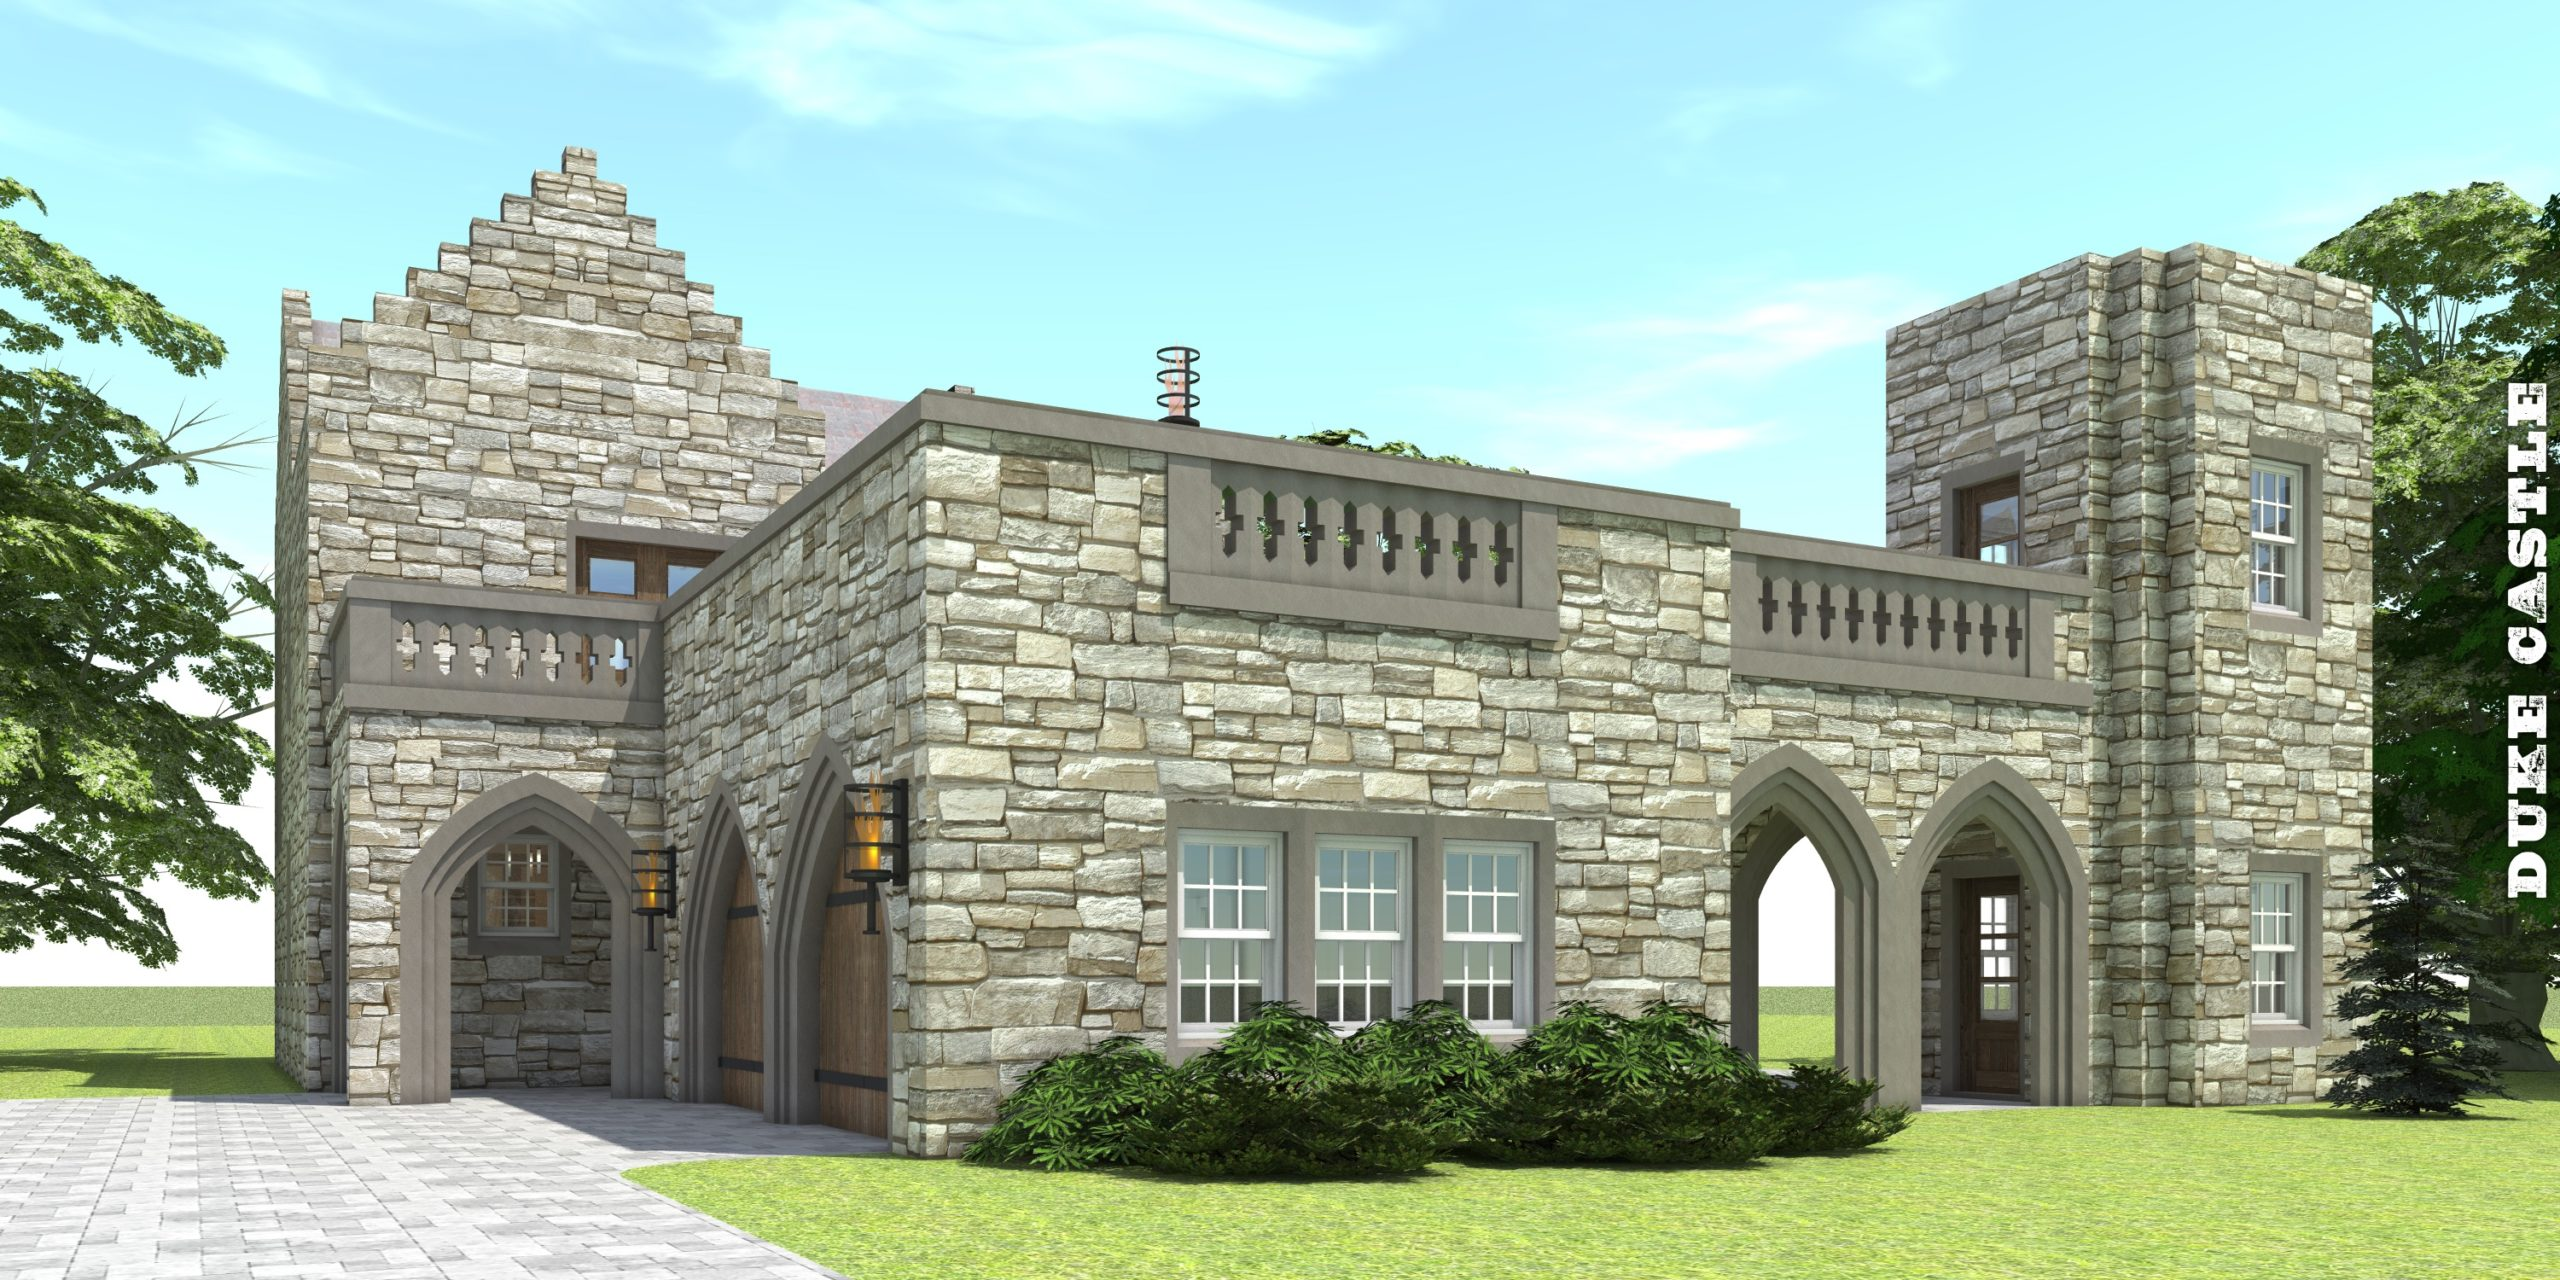 Castle Home with 2 Stair Towers. Duke Castle by Tyree House Plans.